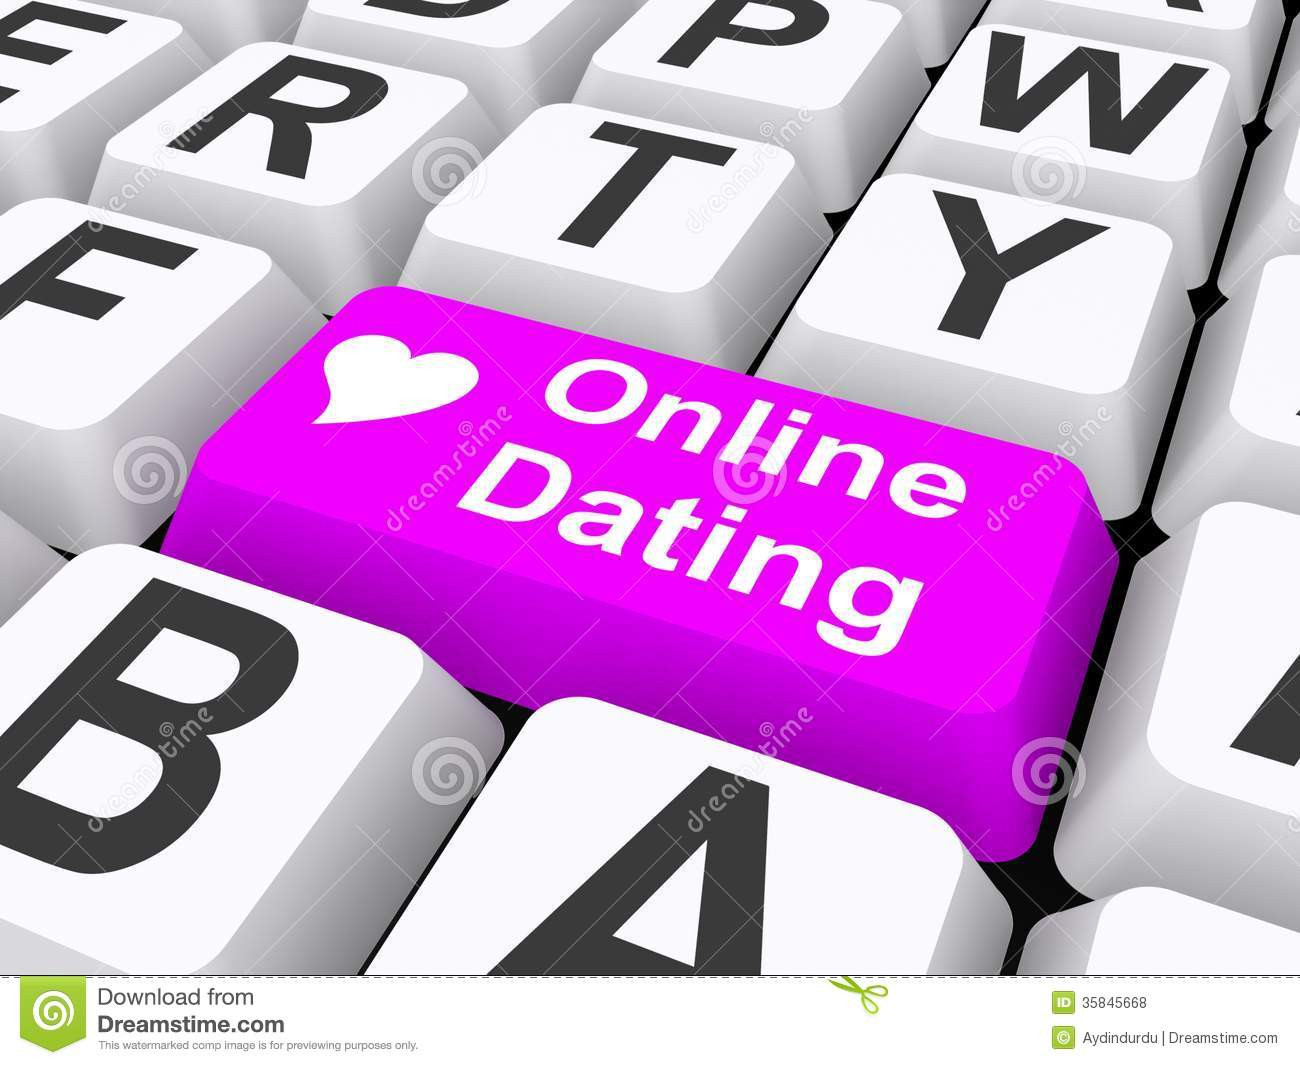 free online personals in ellenwood Meet decatur singles online & chat in the forums dhu is a 100% free dating site to find personals & casual encounters in decatur.